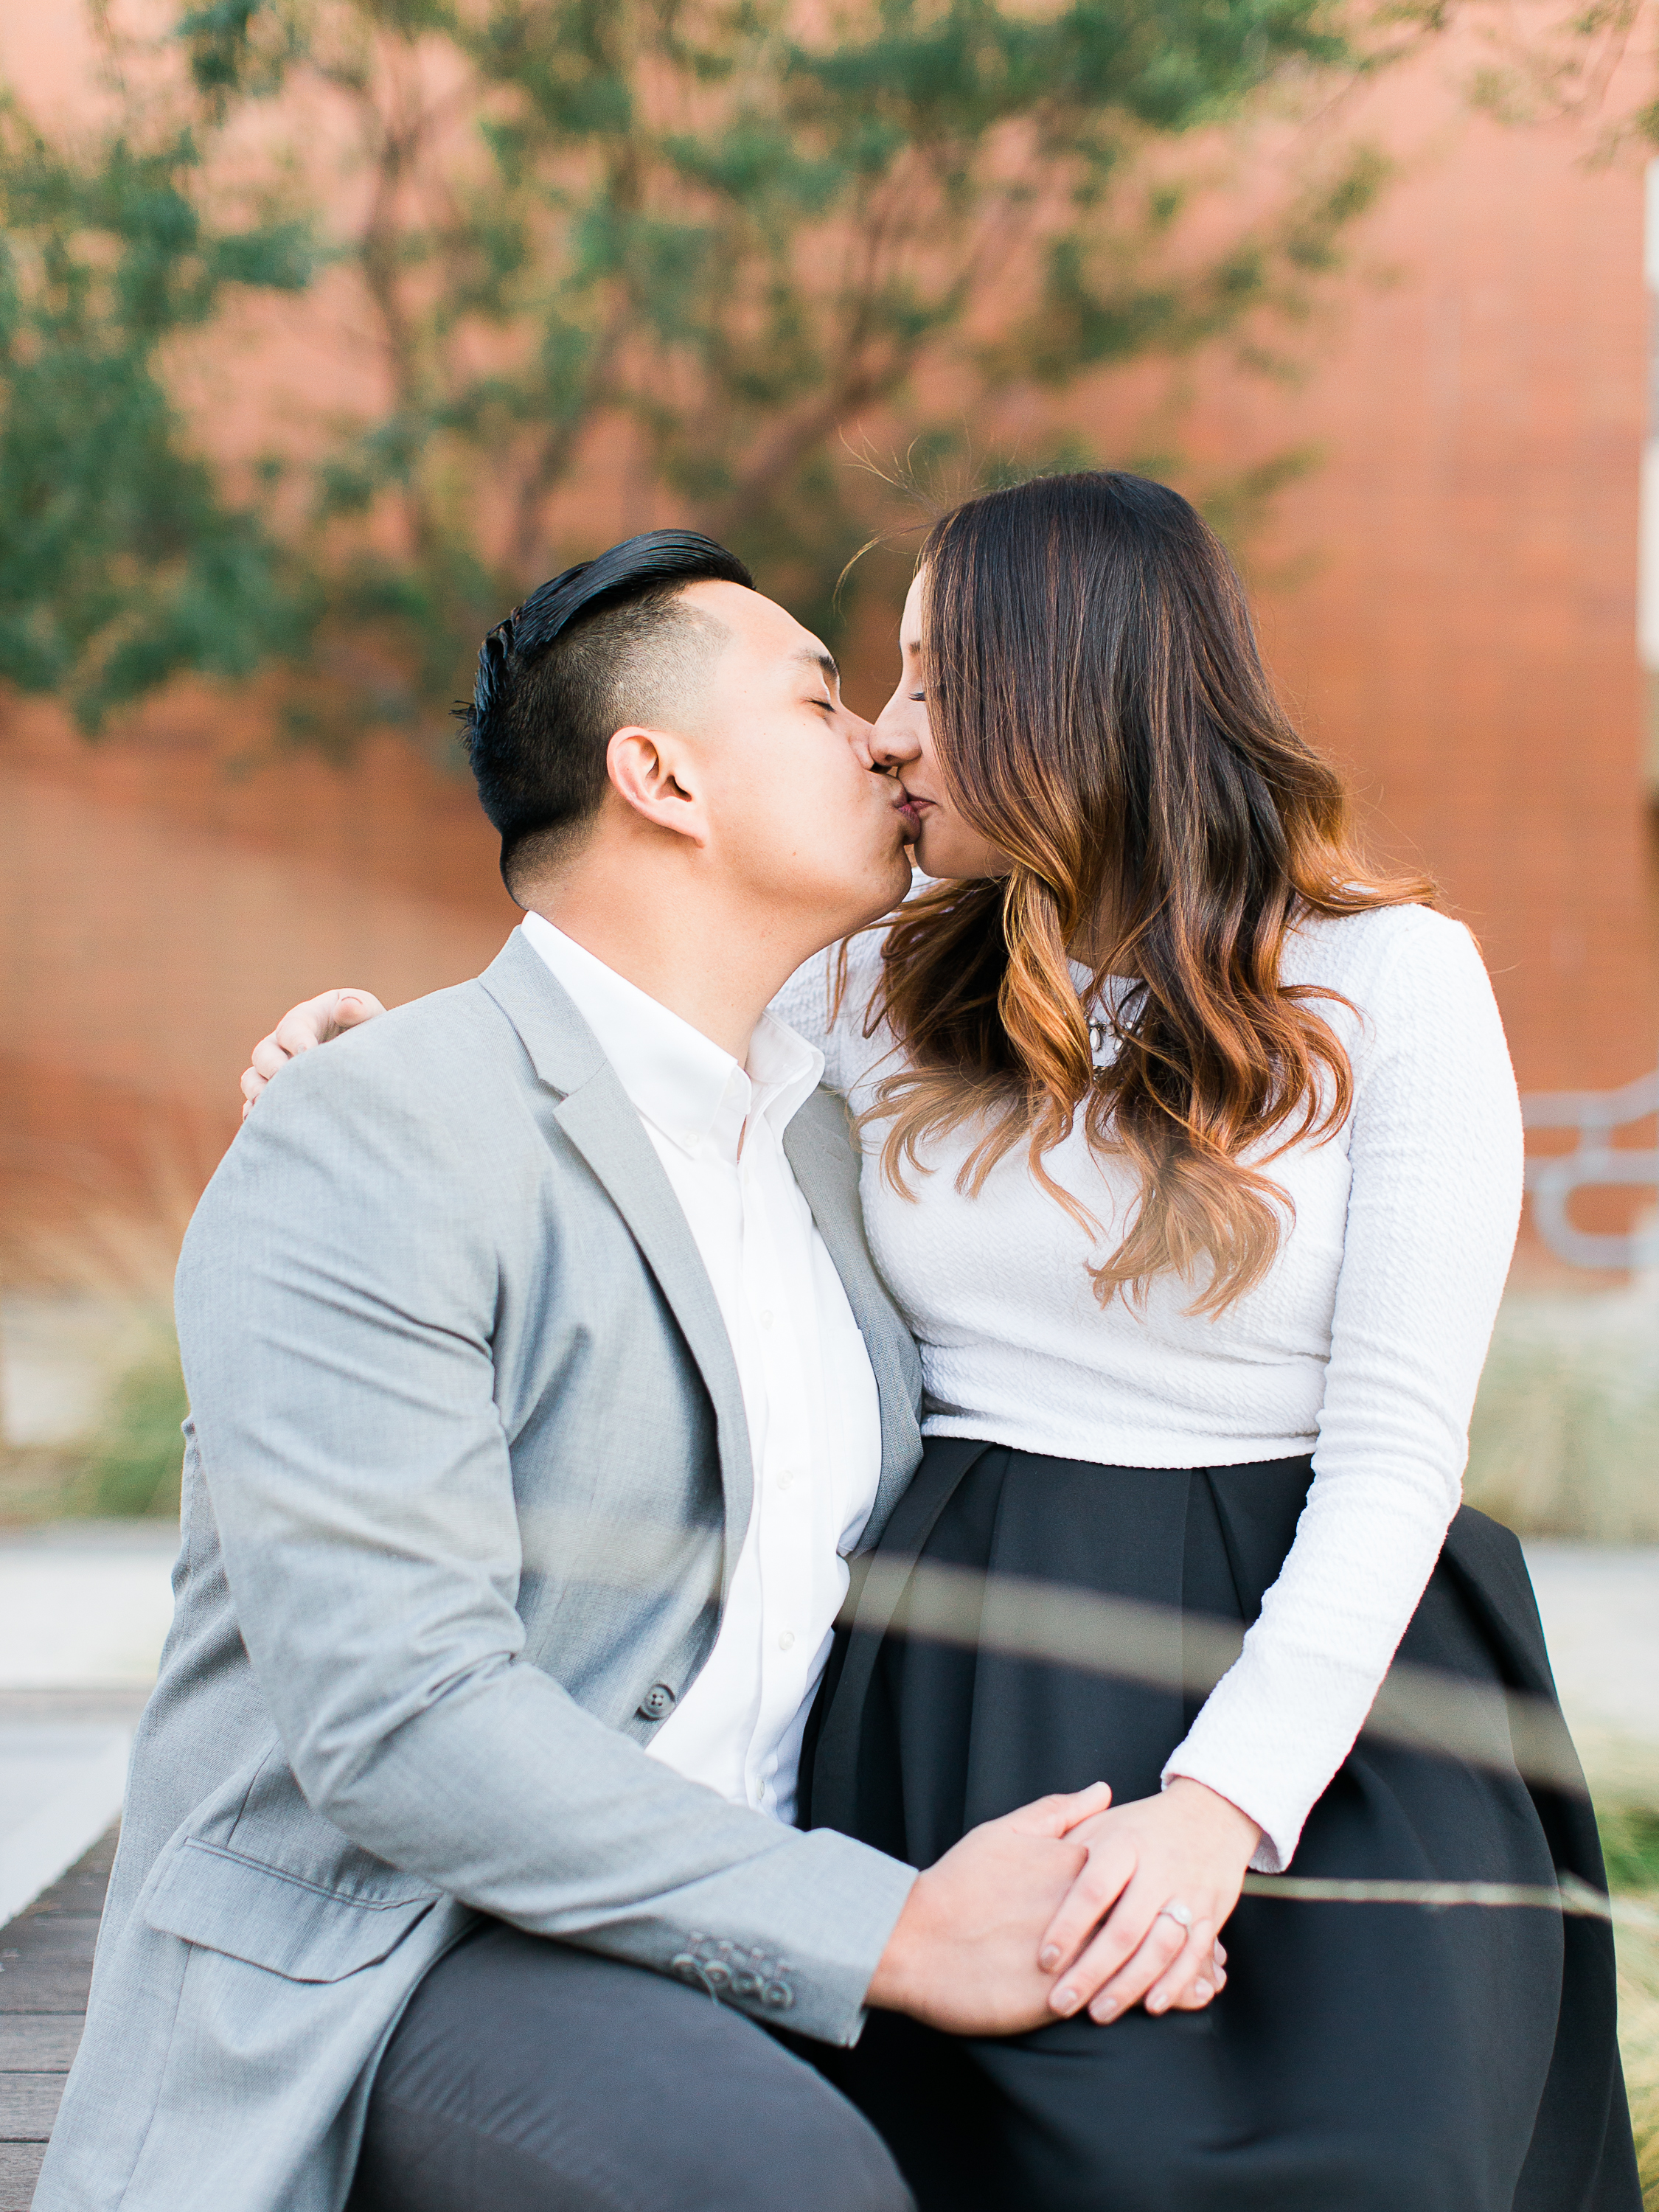 Klint and Yessy Engagement _ Brandon J Ferlin Photography-86.jpg